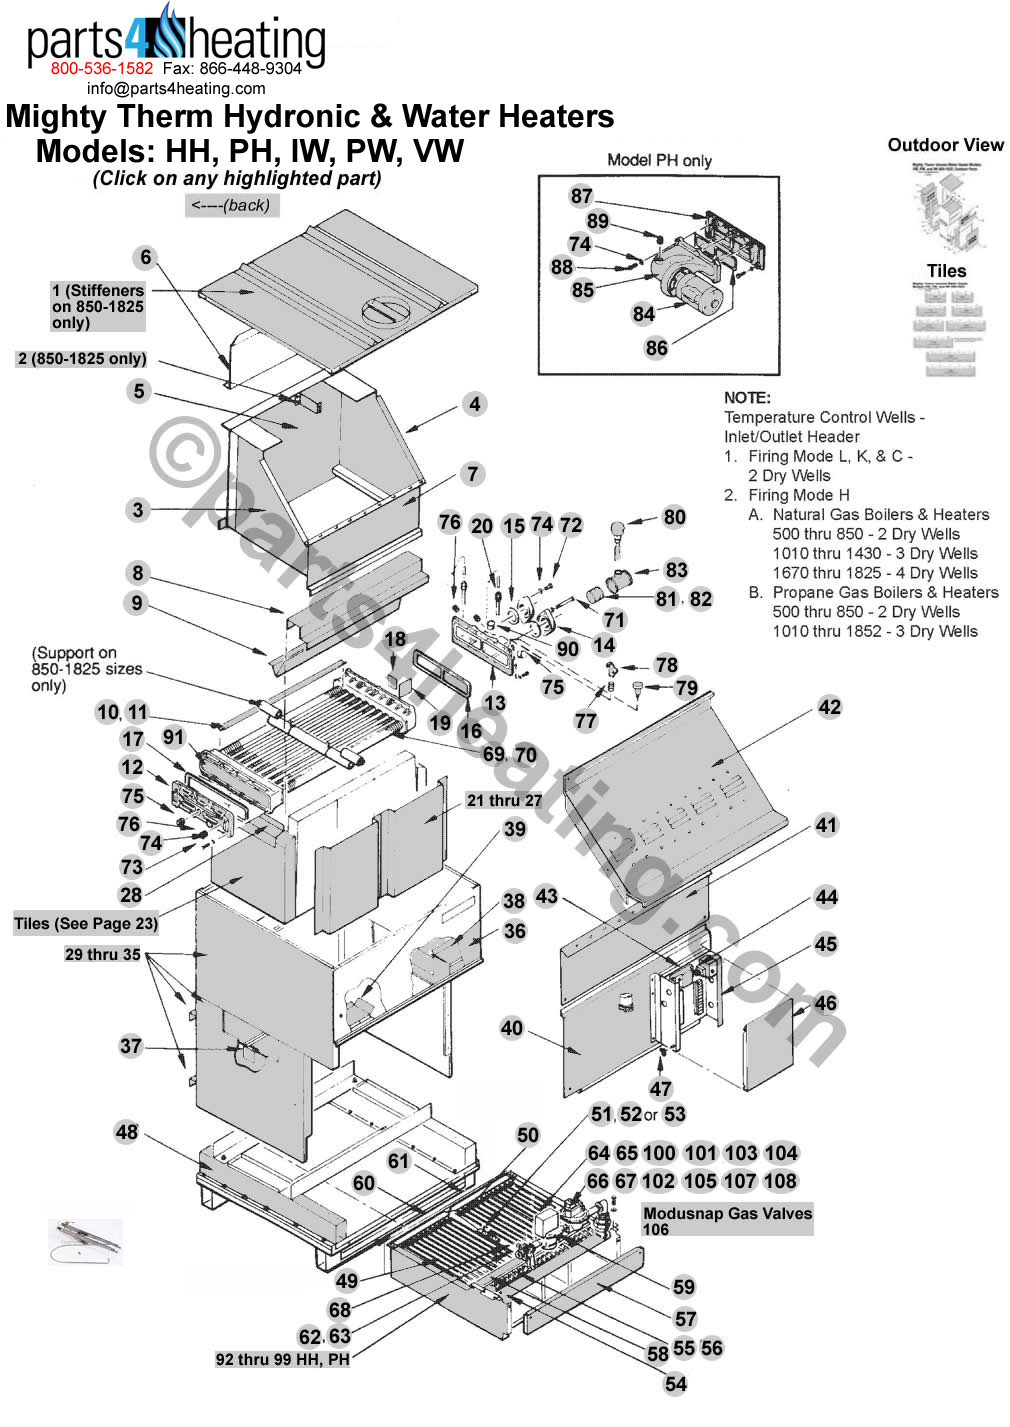 laars gas furnace electrical wiring diagram wiring schematic diagram rh 193 uggs outlet co RBI Boiler Wiring Diagrams Hb1160 laars boiler installation manual